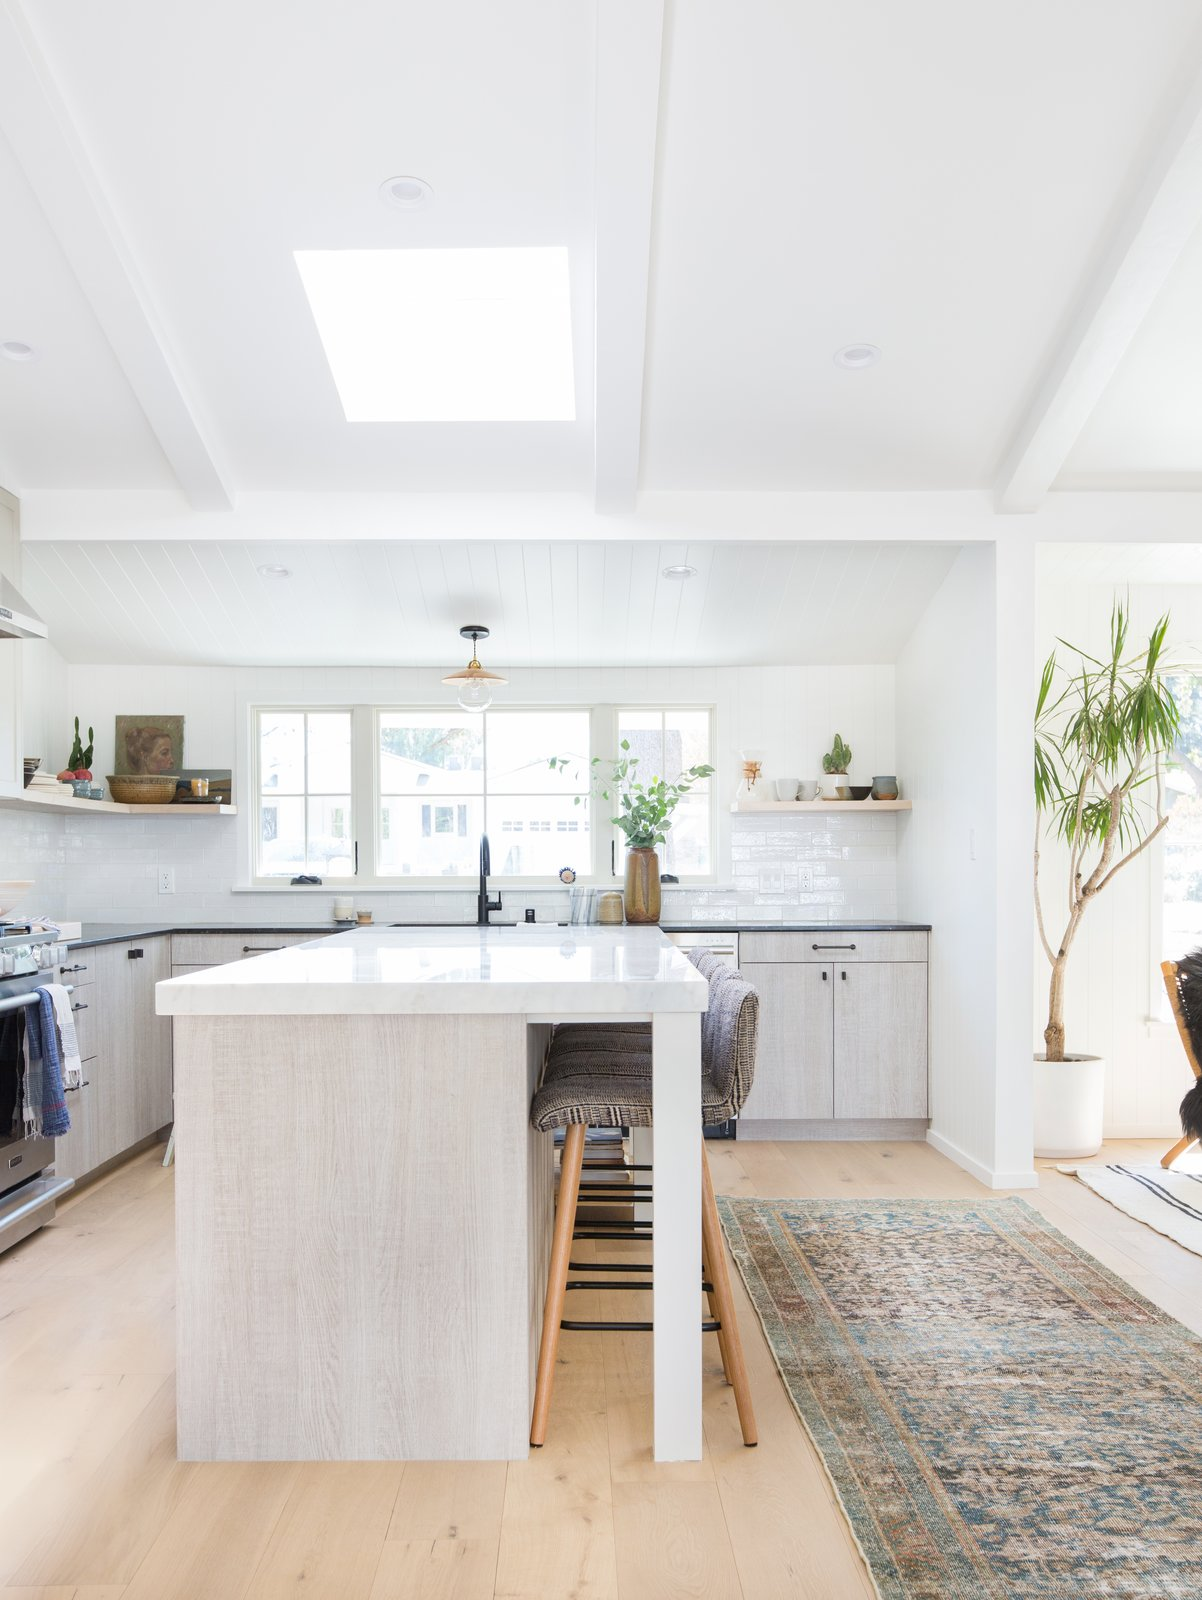 """The one thing I did love about the previous kitchen was the large window over the sink, and that's the only design element we chose to keep,"" says Amber Lewis.   from Cooking Up Style"